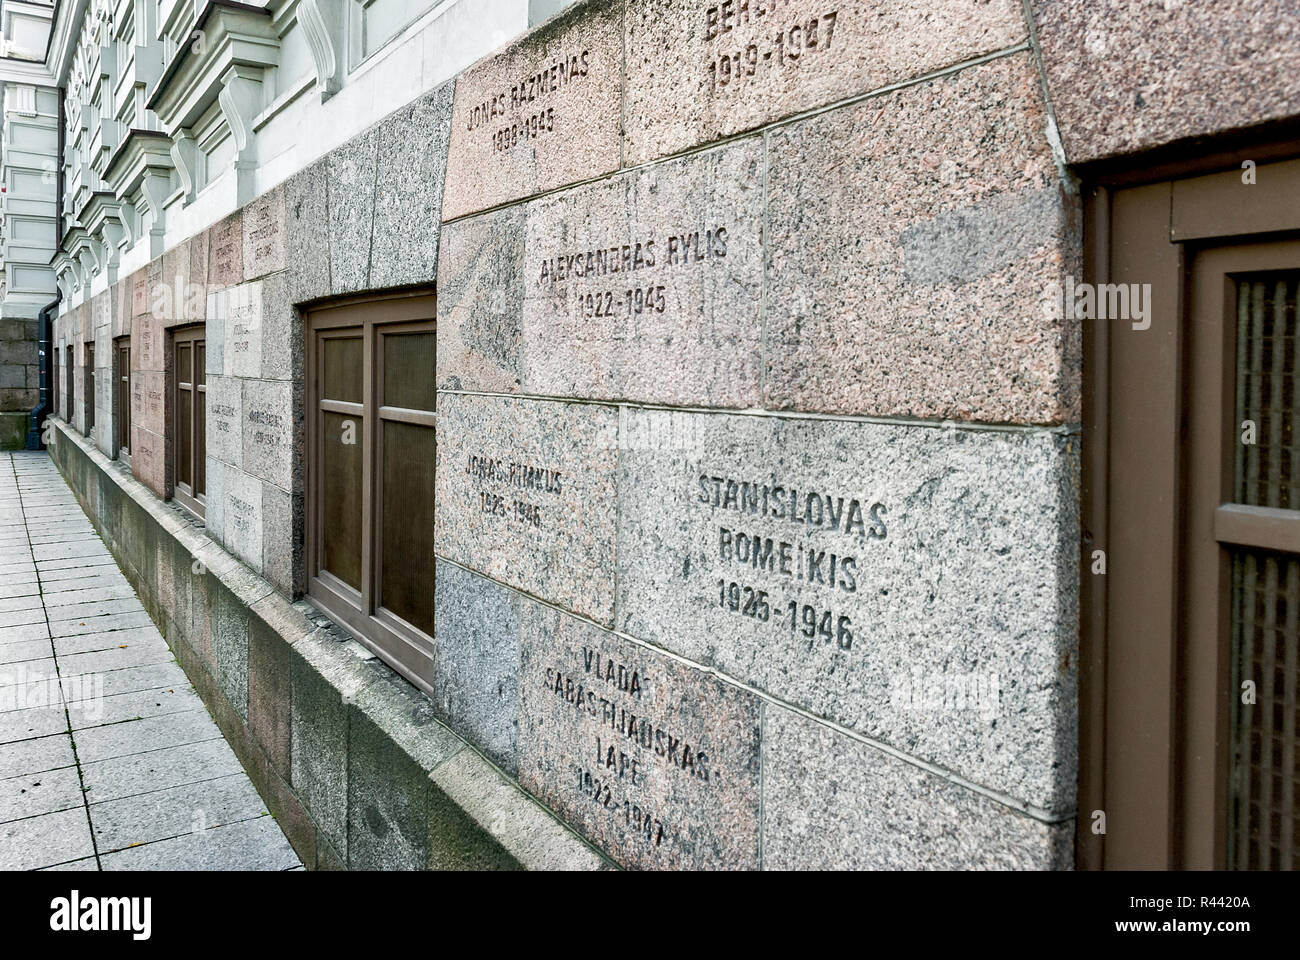 Wall of lithuanian genocide victims, Vilnius, Lithuania - Stock Image